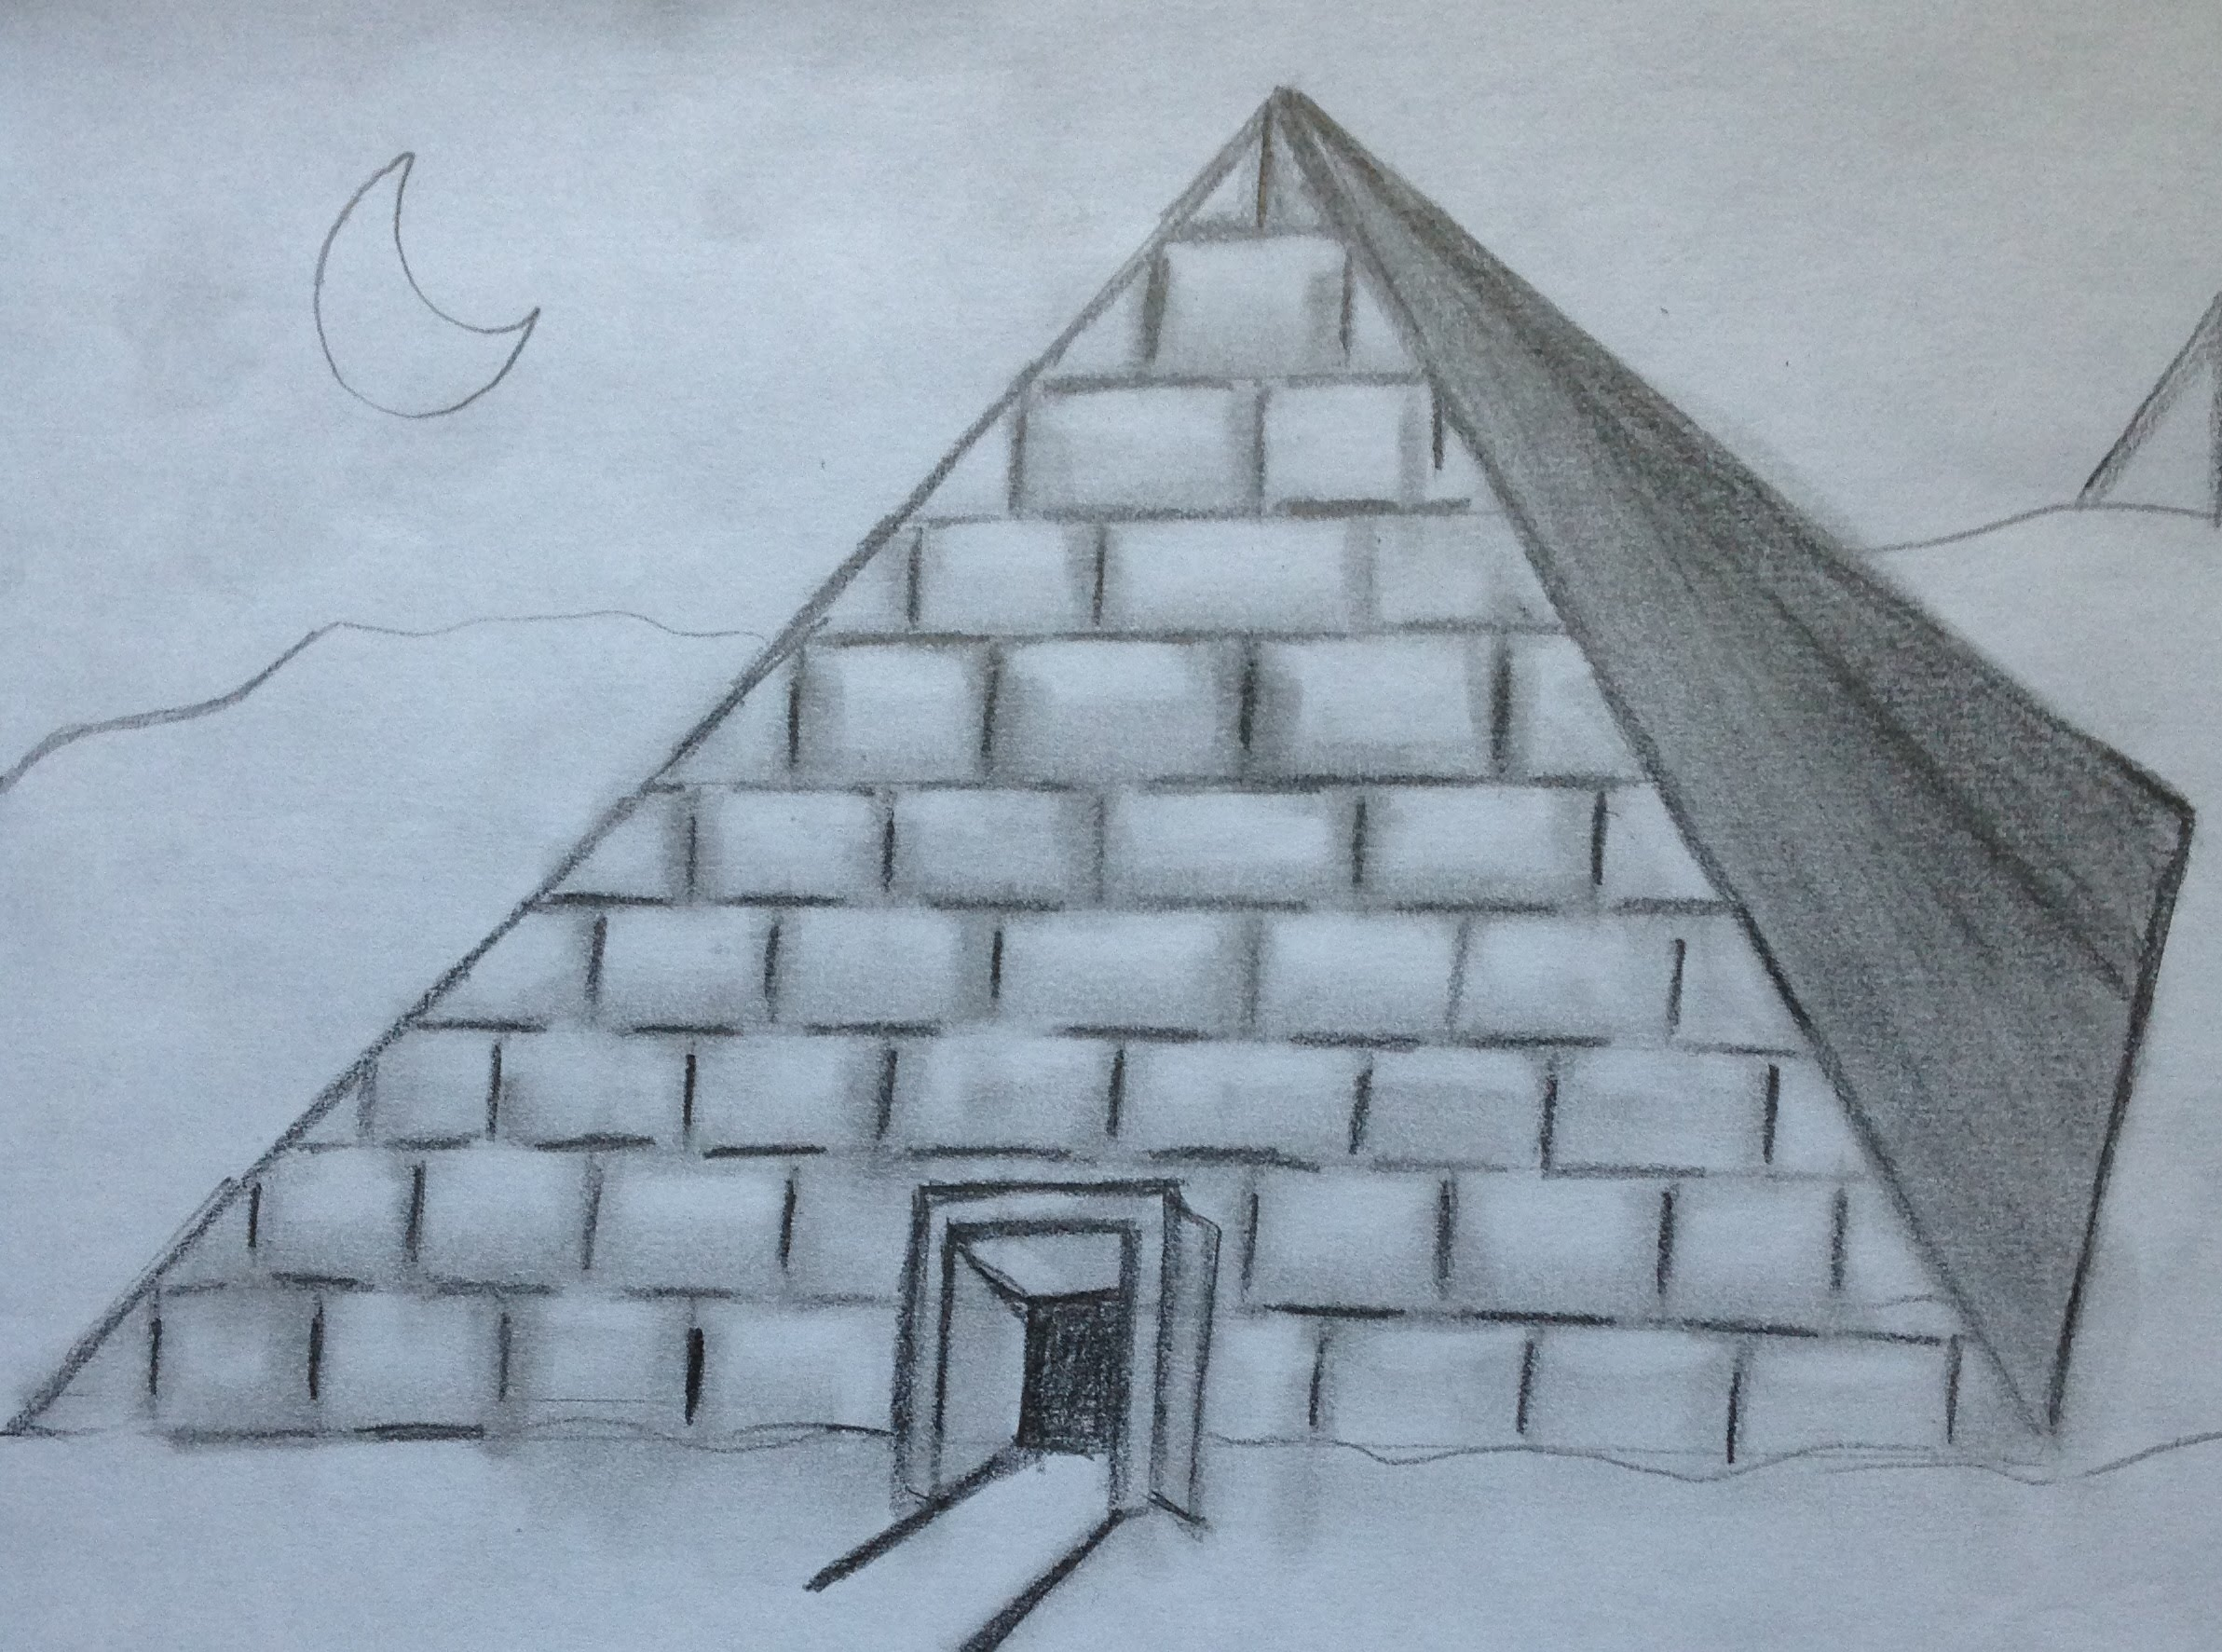 Mayan Pyramid Drawing at GetDrawings.com | Free for personal use ...